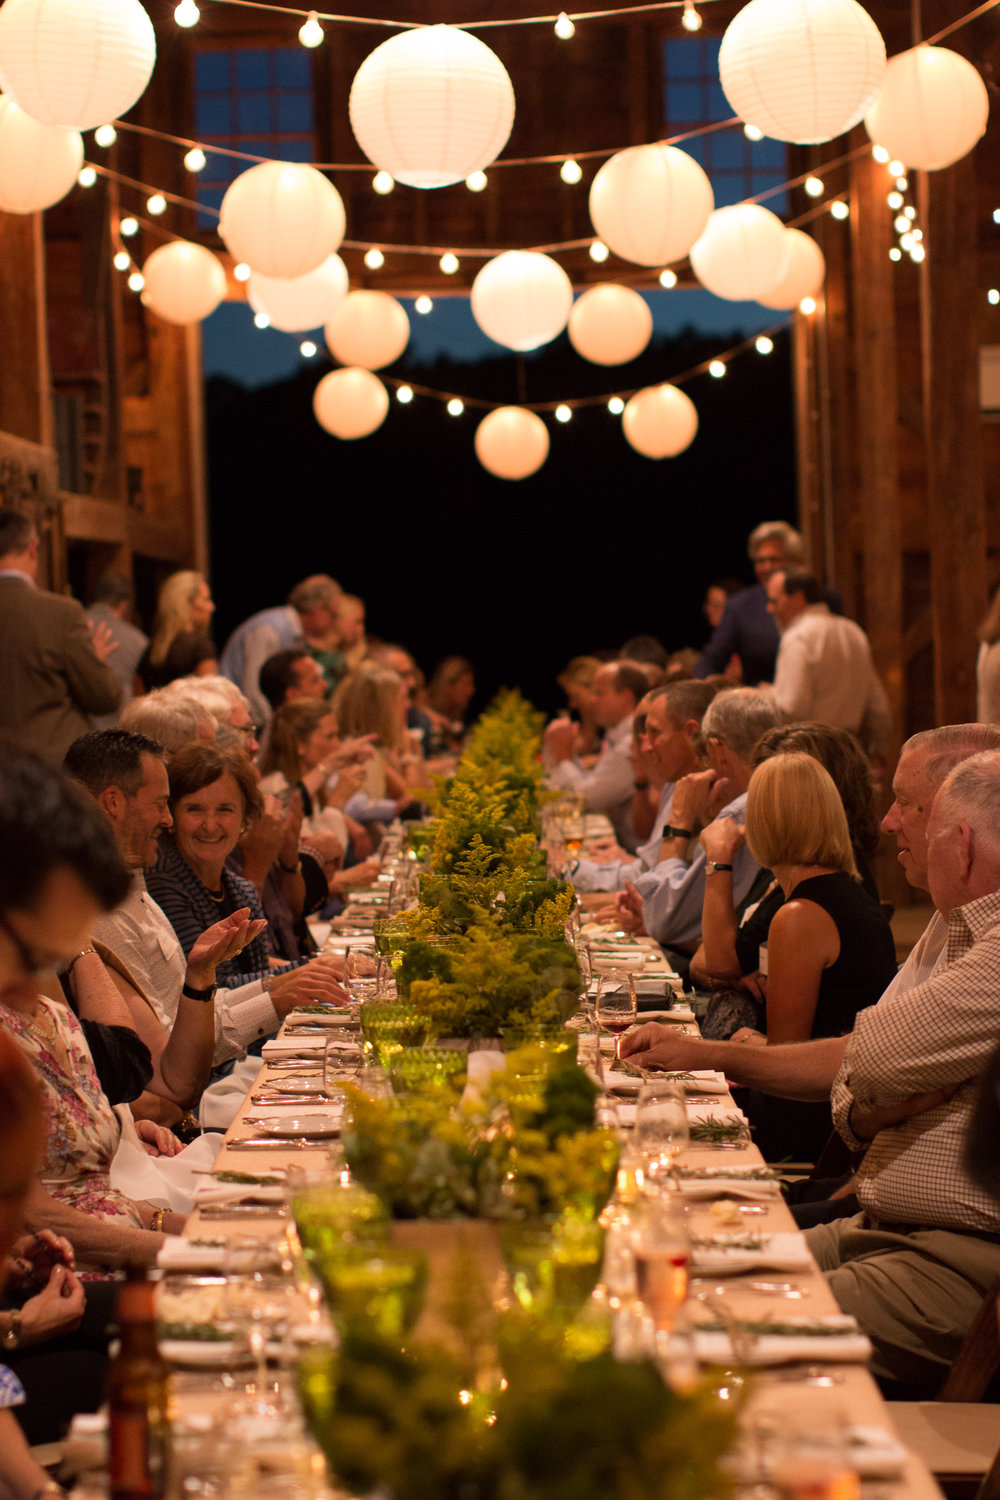 Copy of Event Dinner in Barn